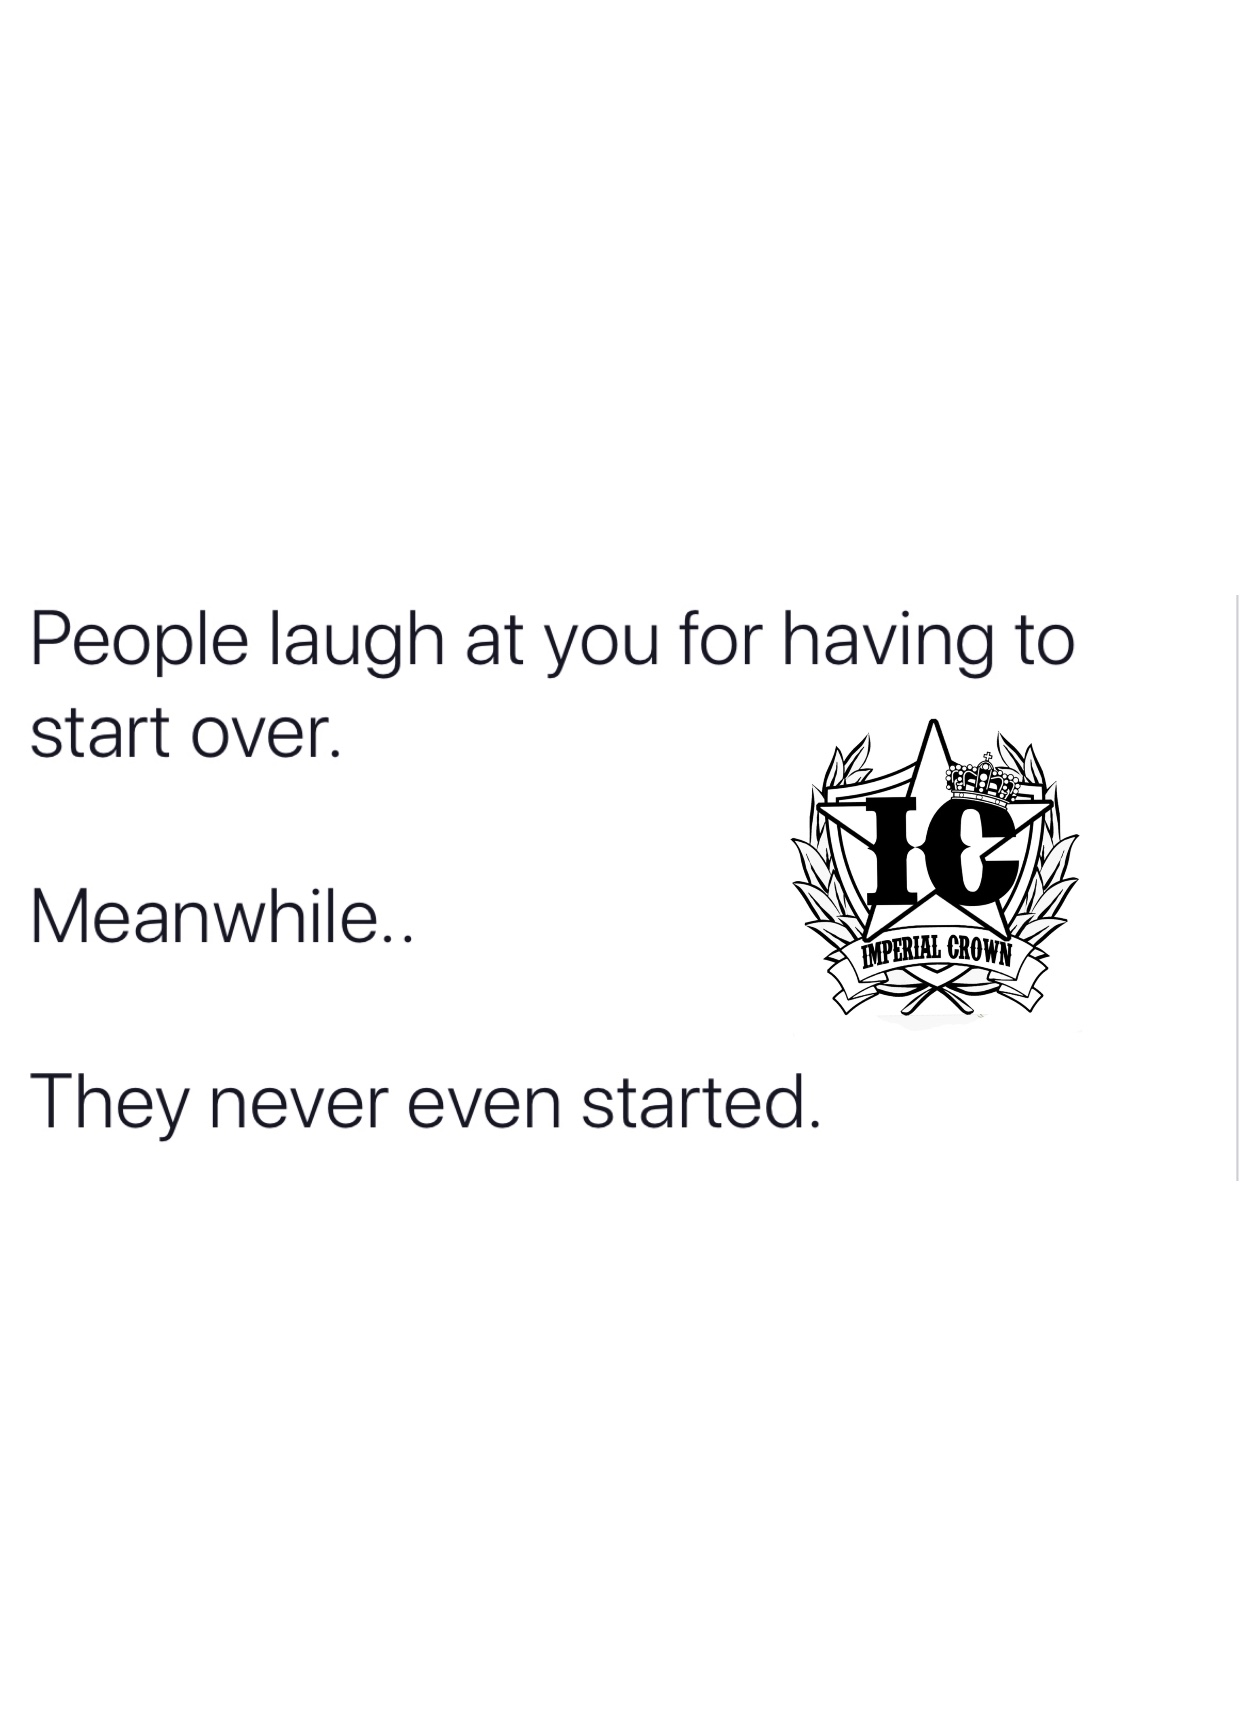 People laugh at you for having to start over.